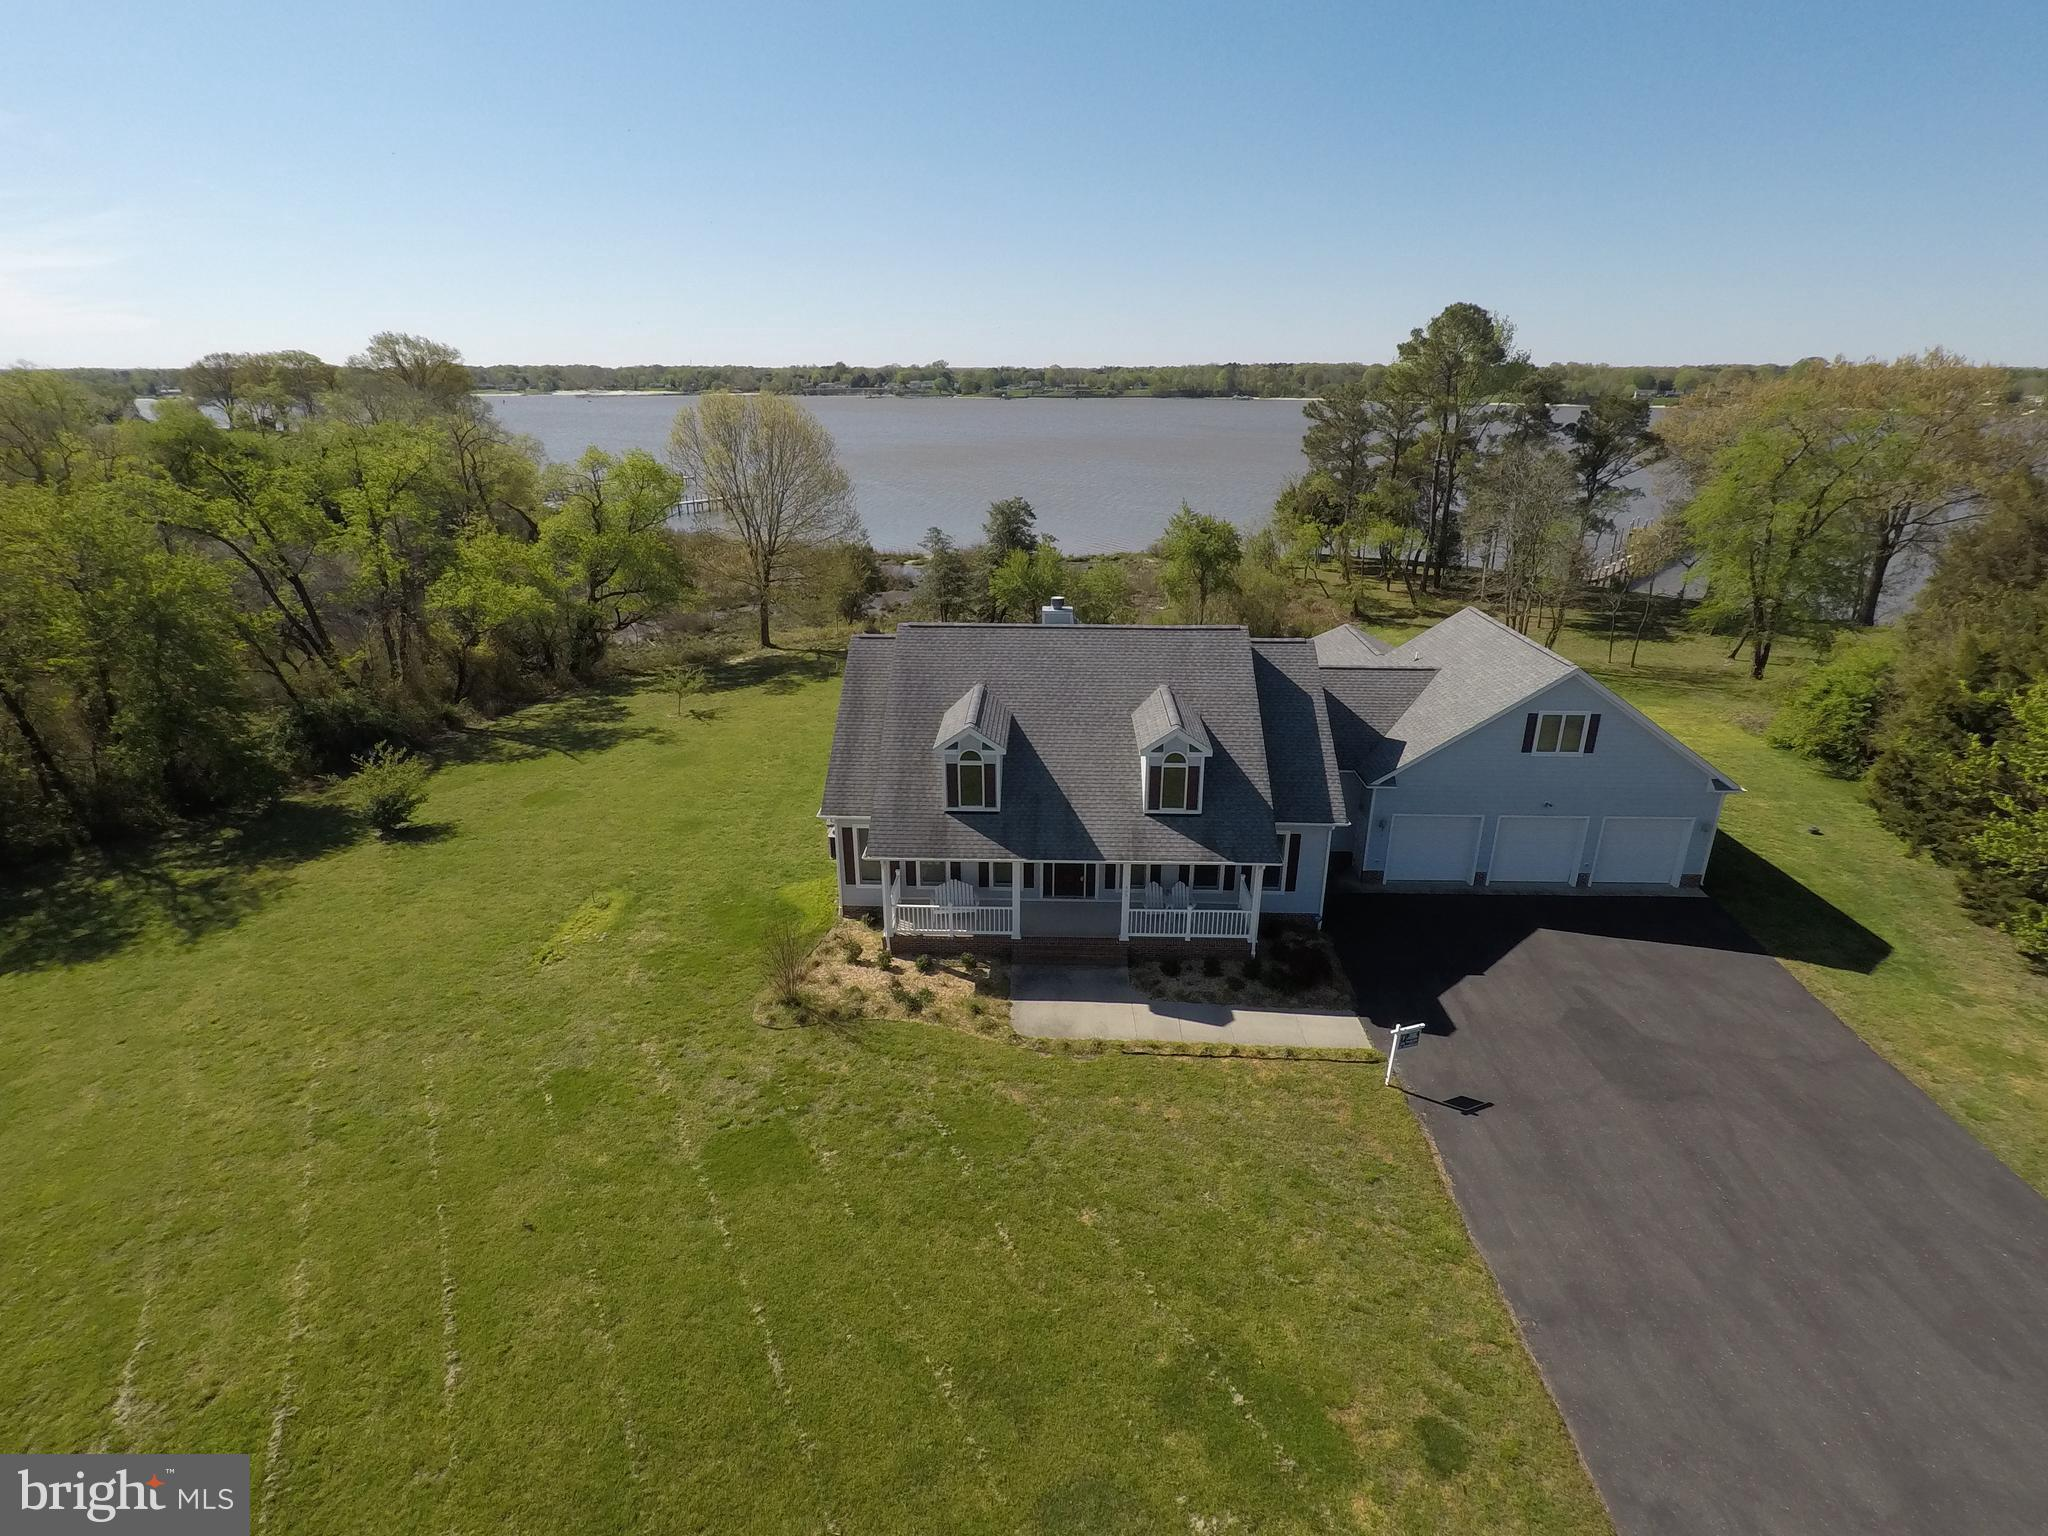 460 SEBASTIAN AVENUE, COLONIAL BEACH, VA 22443